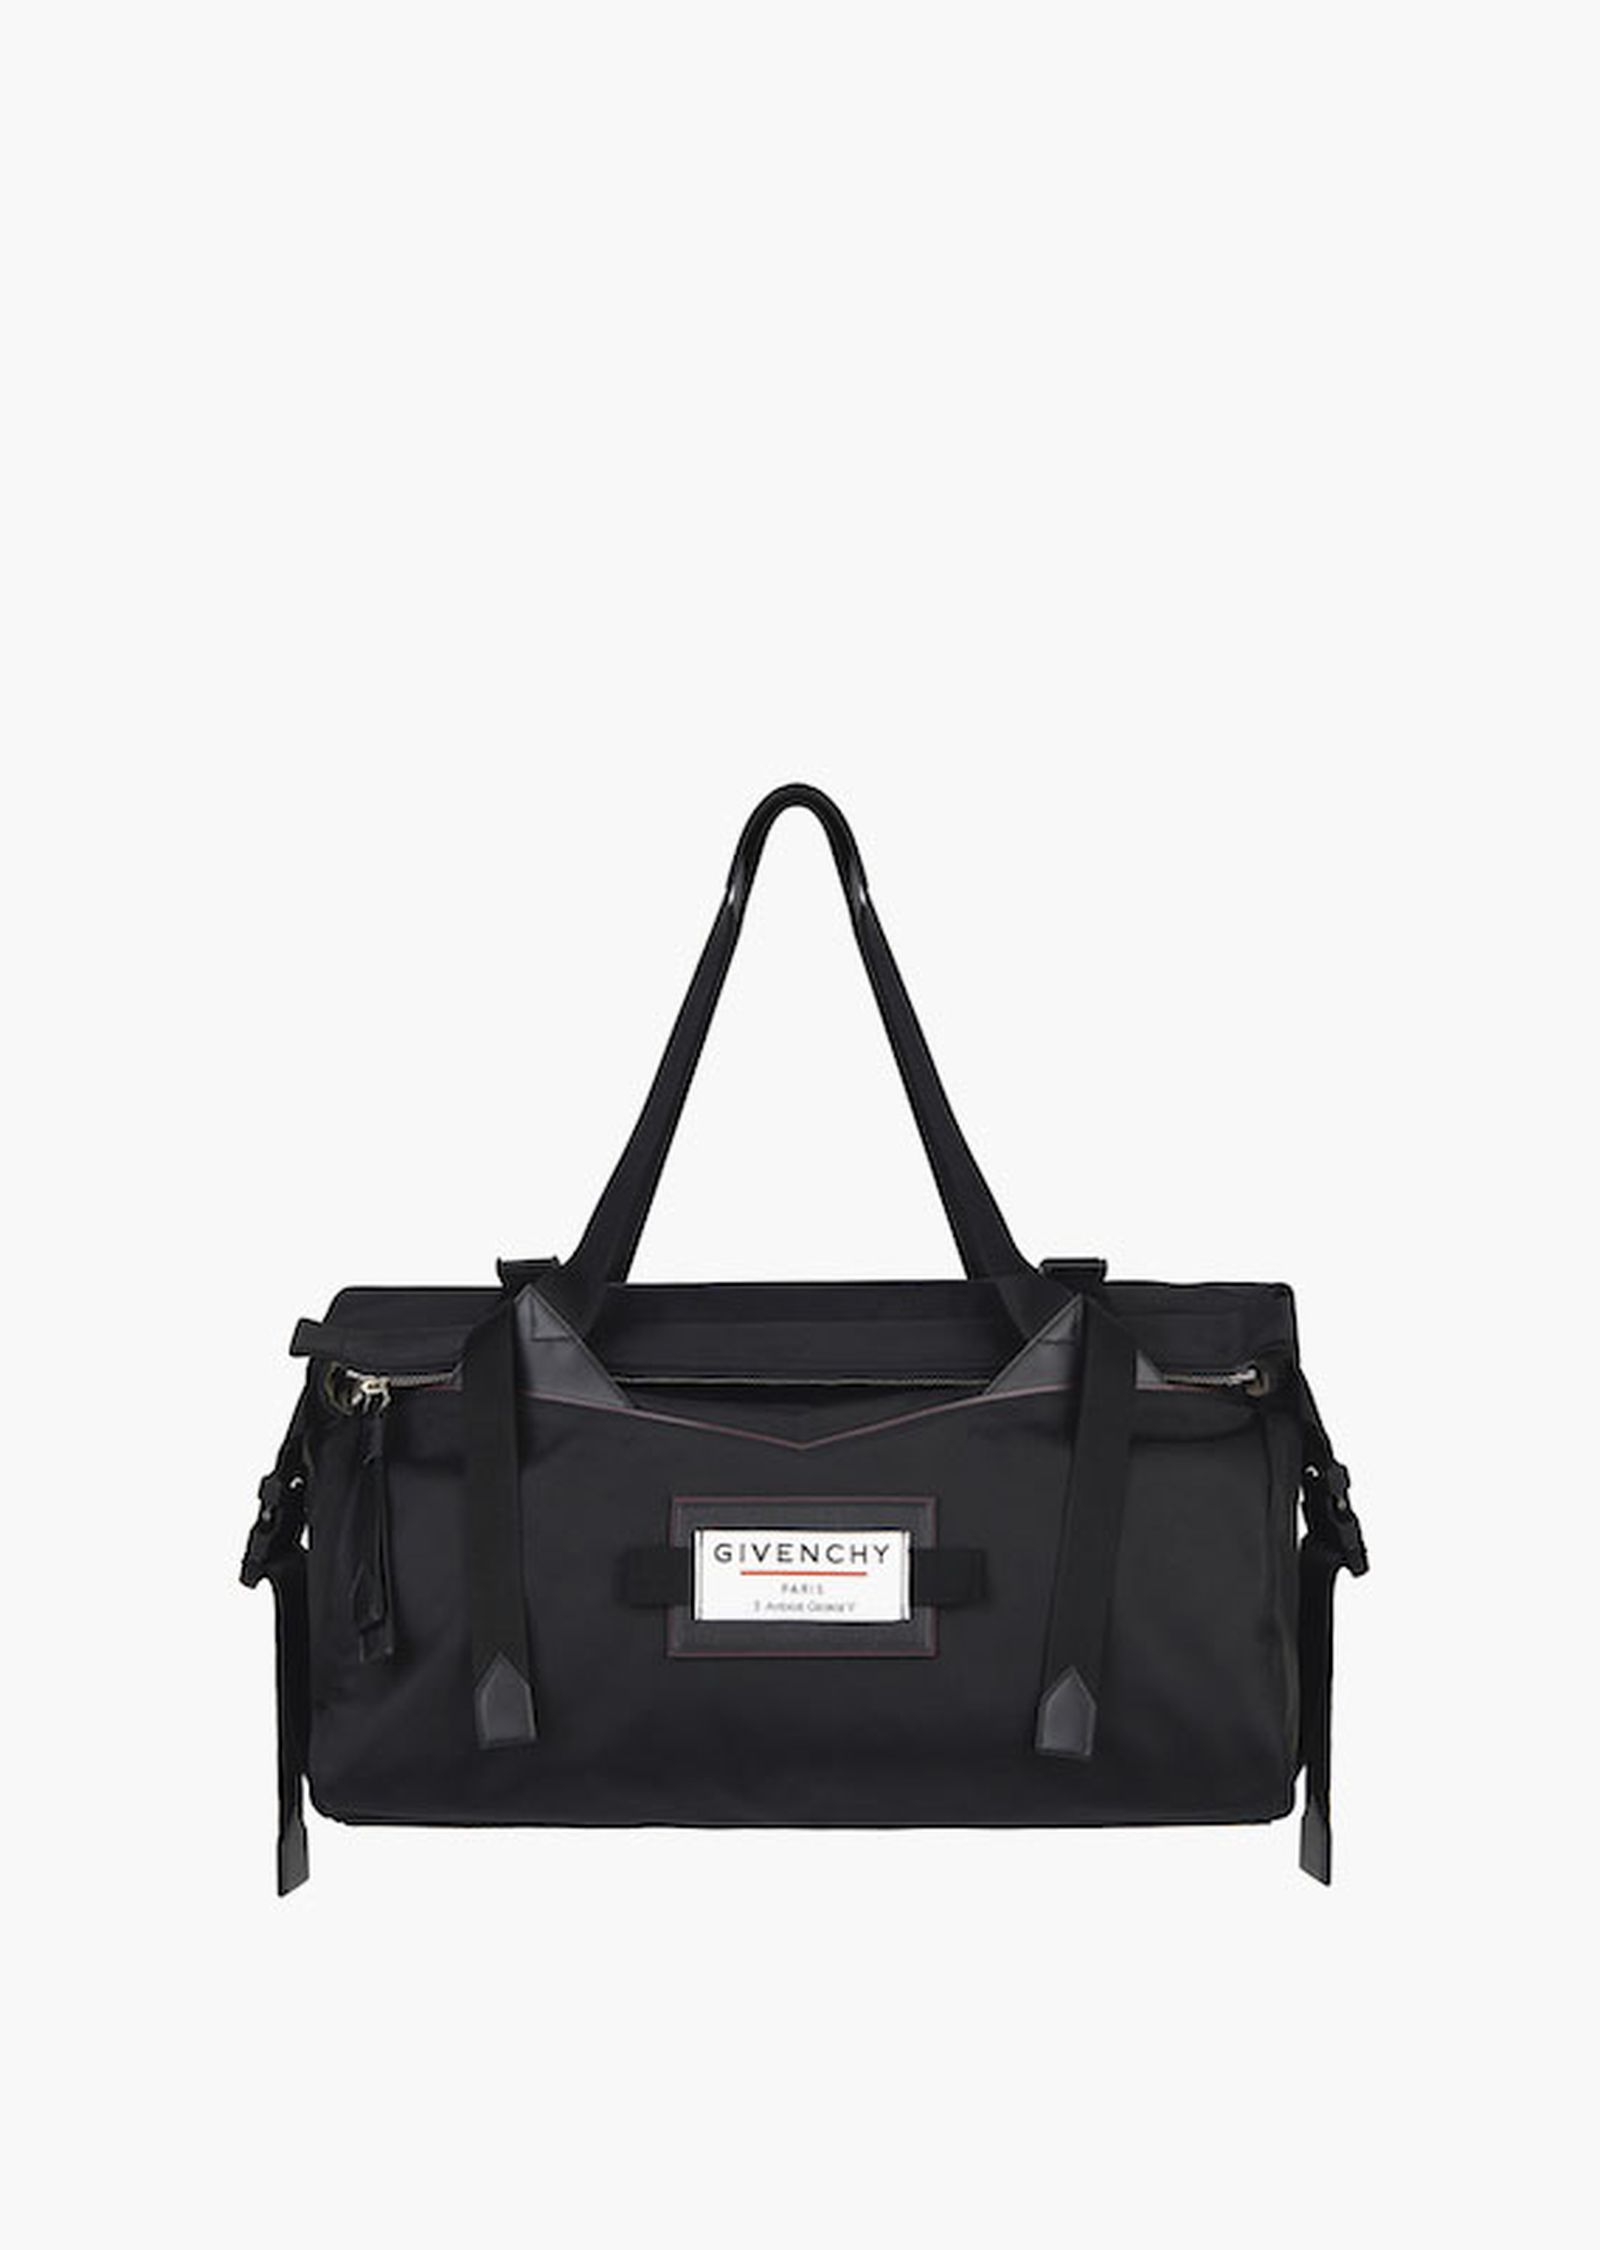 givenchy downtown travel collection Clare Waight Keller